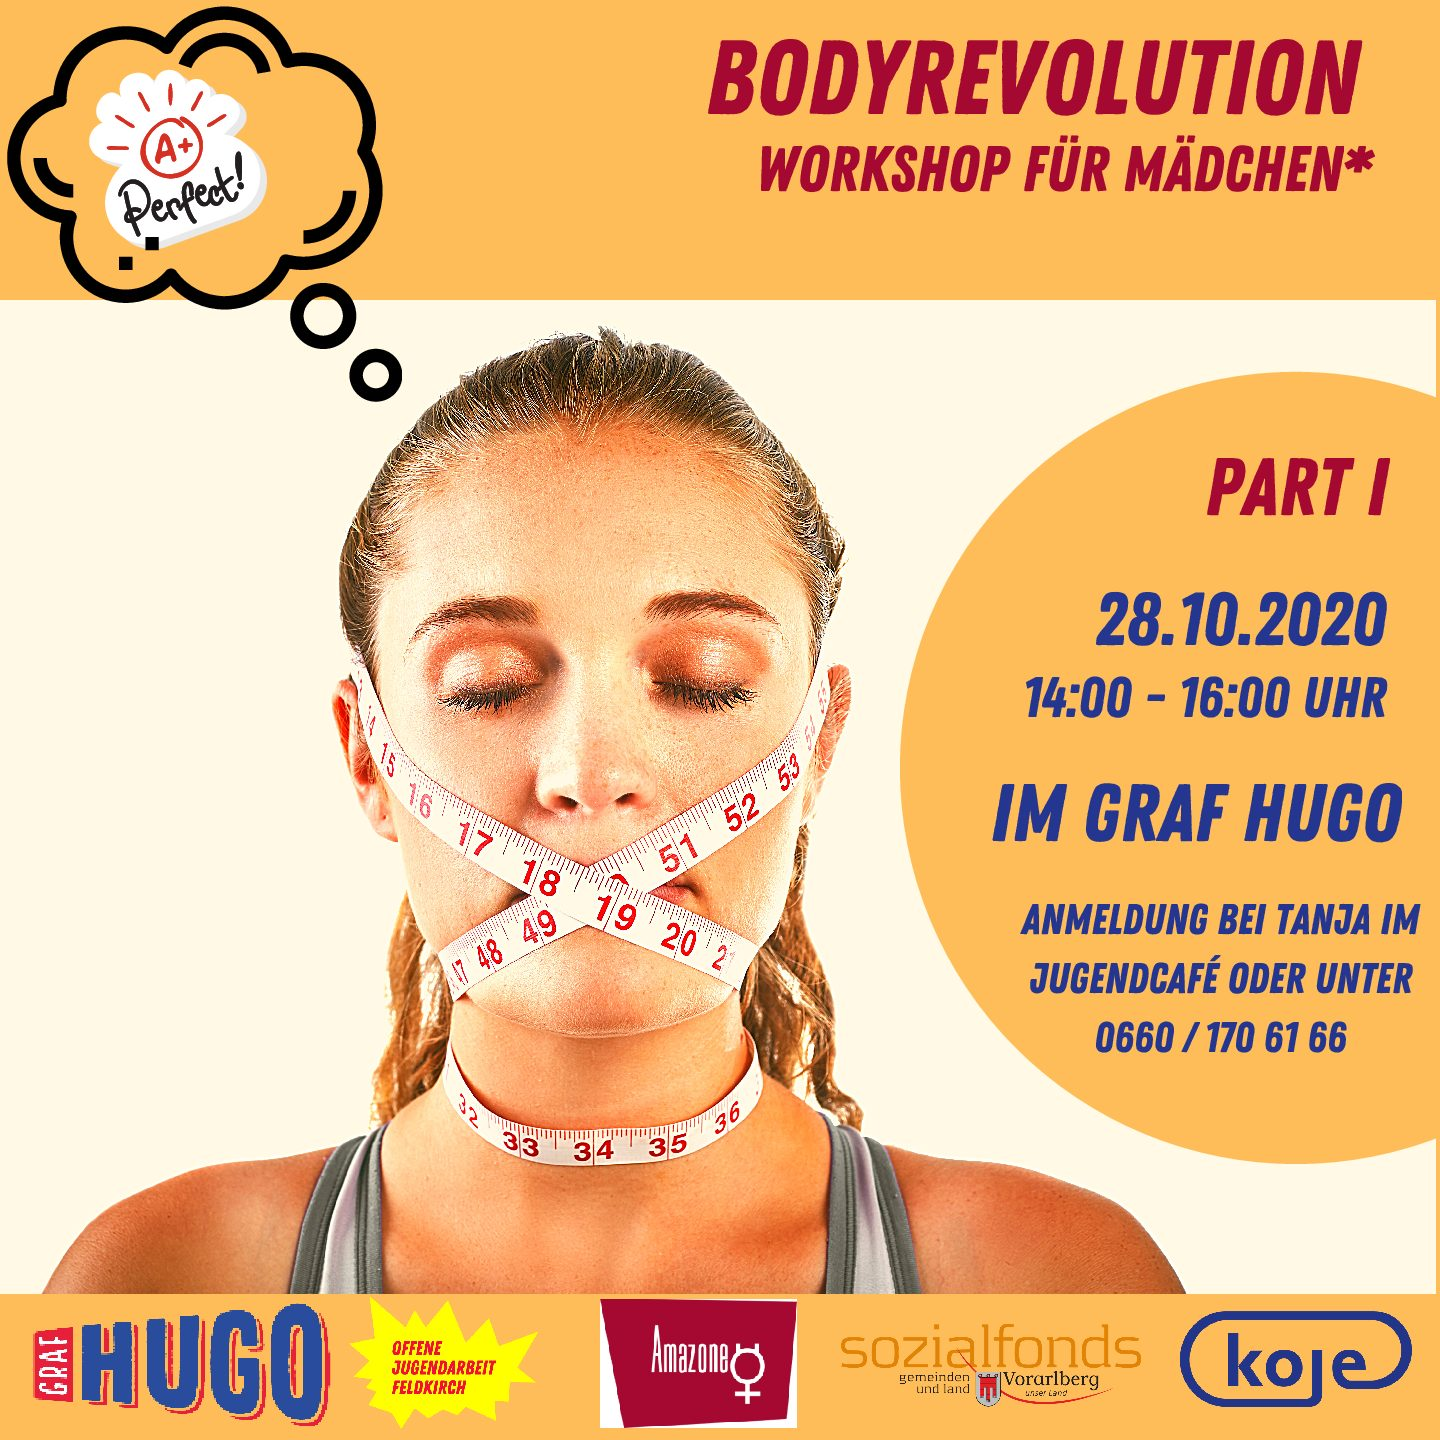 bodyREVOLUTION Part I & II